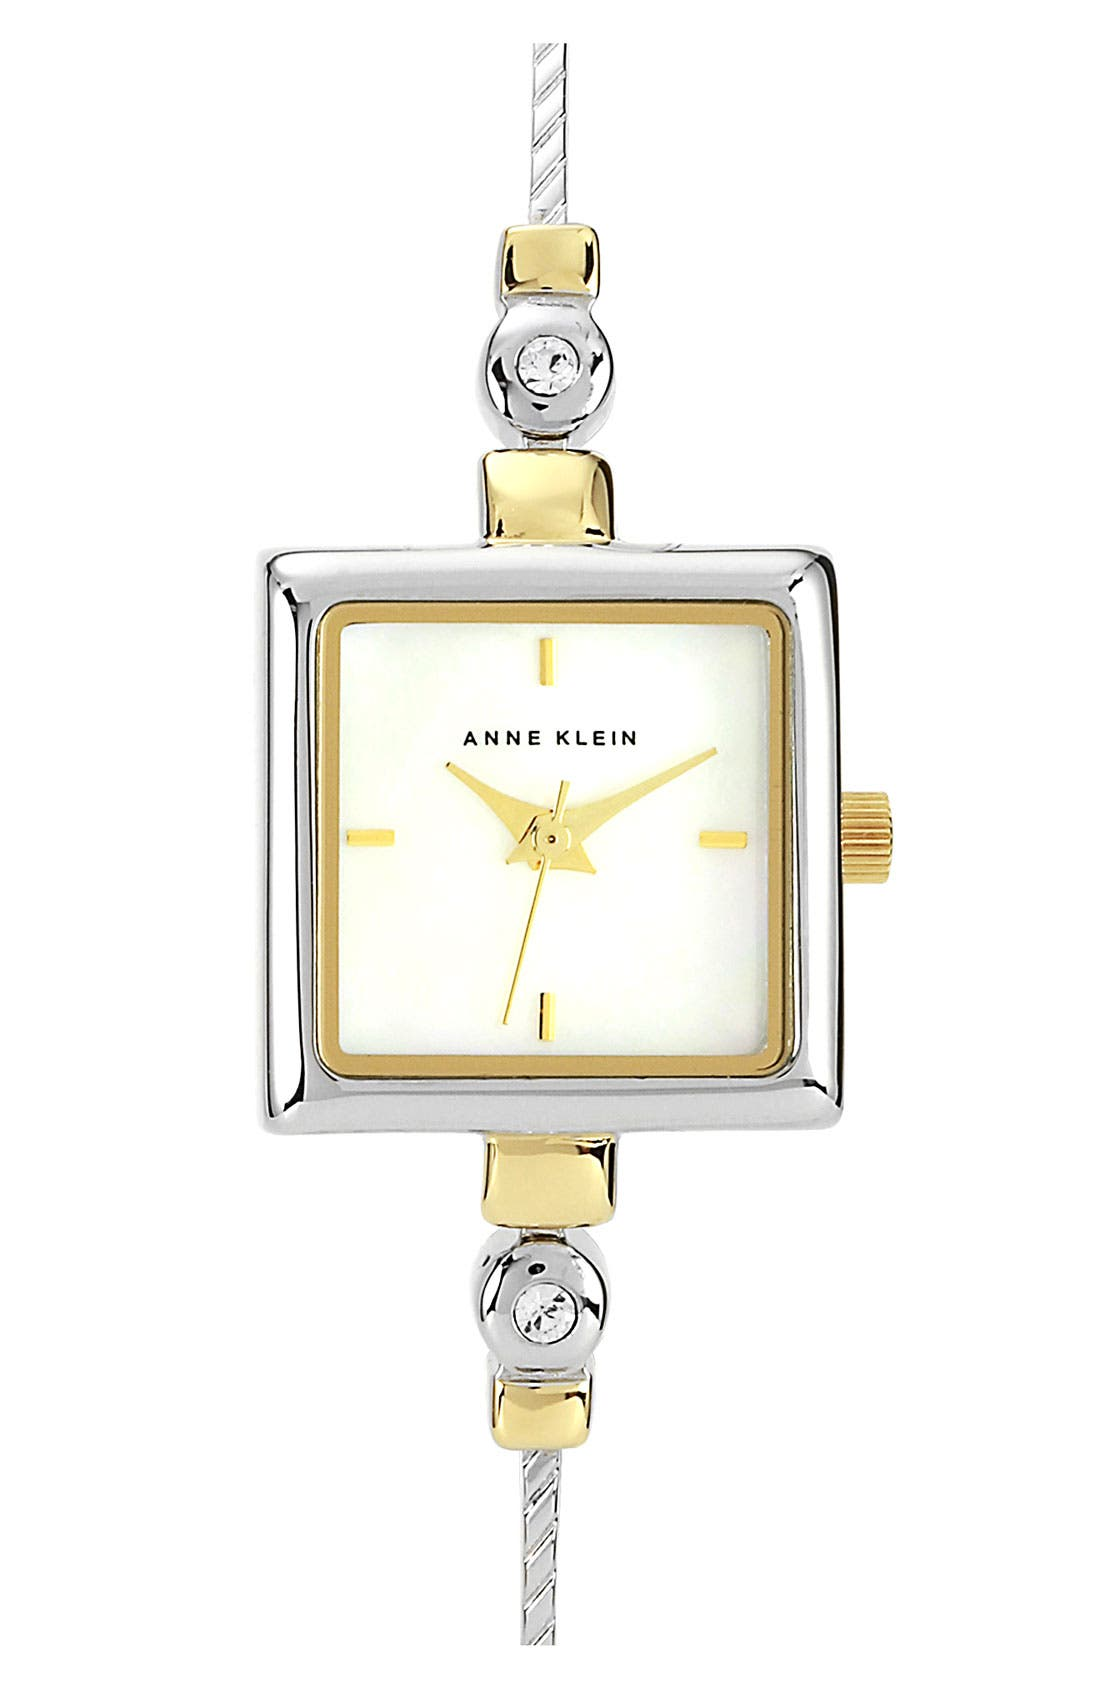 Main Image - Anne Klein Square Bangle Watch, 19mm